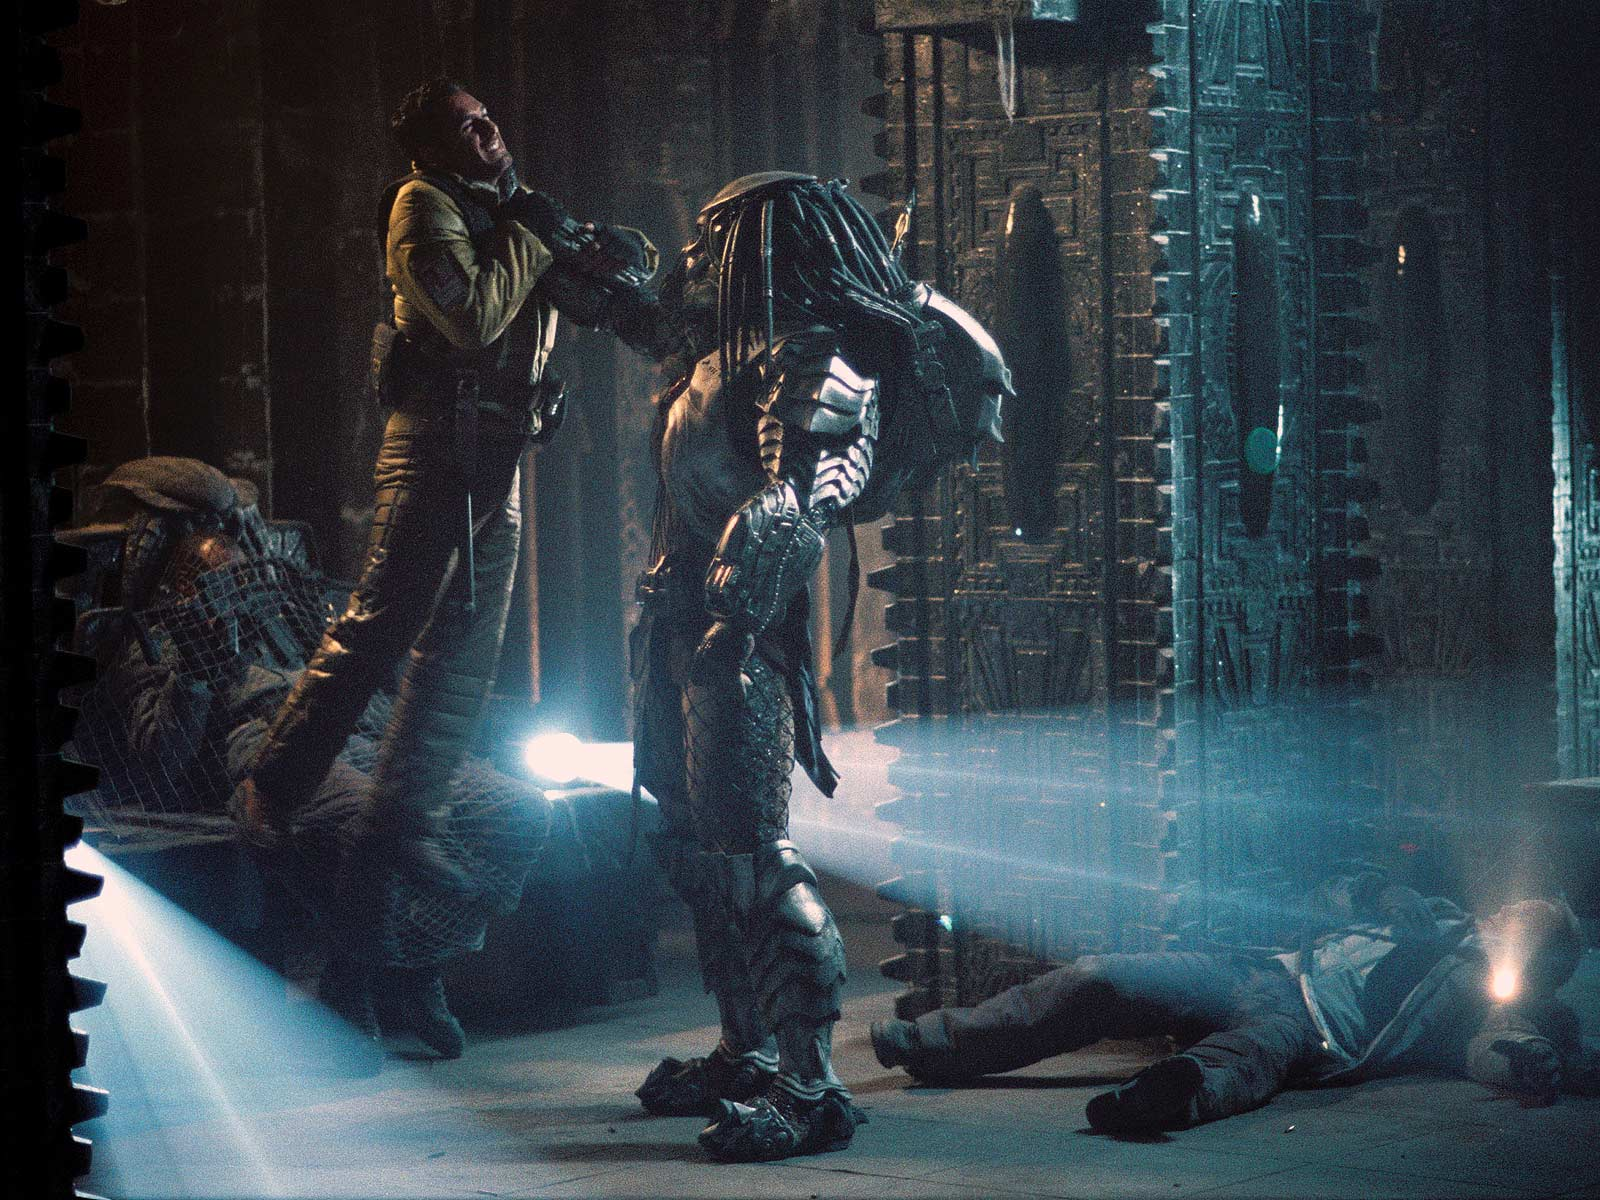 aliens vs predator 3 - photo #5